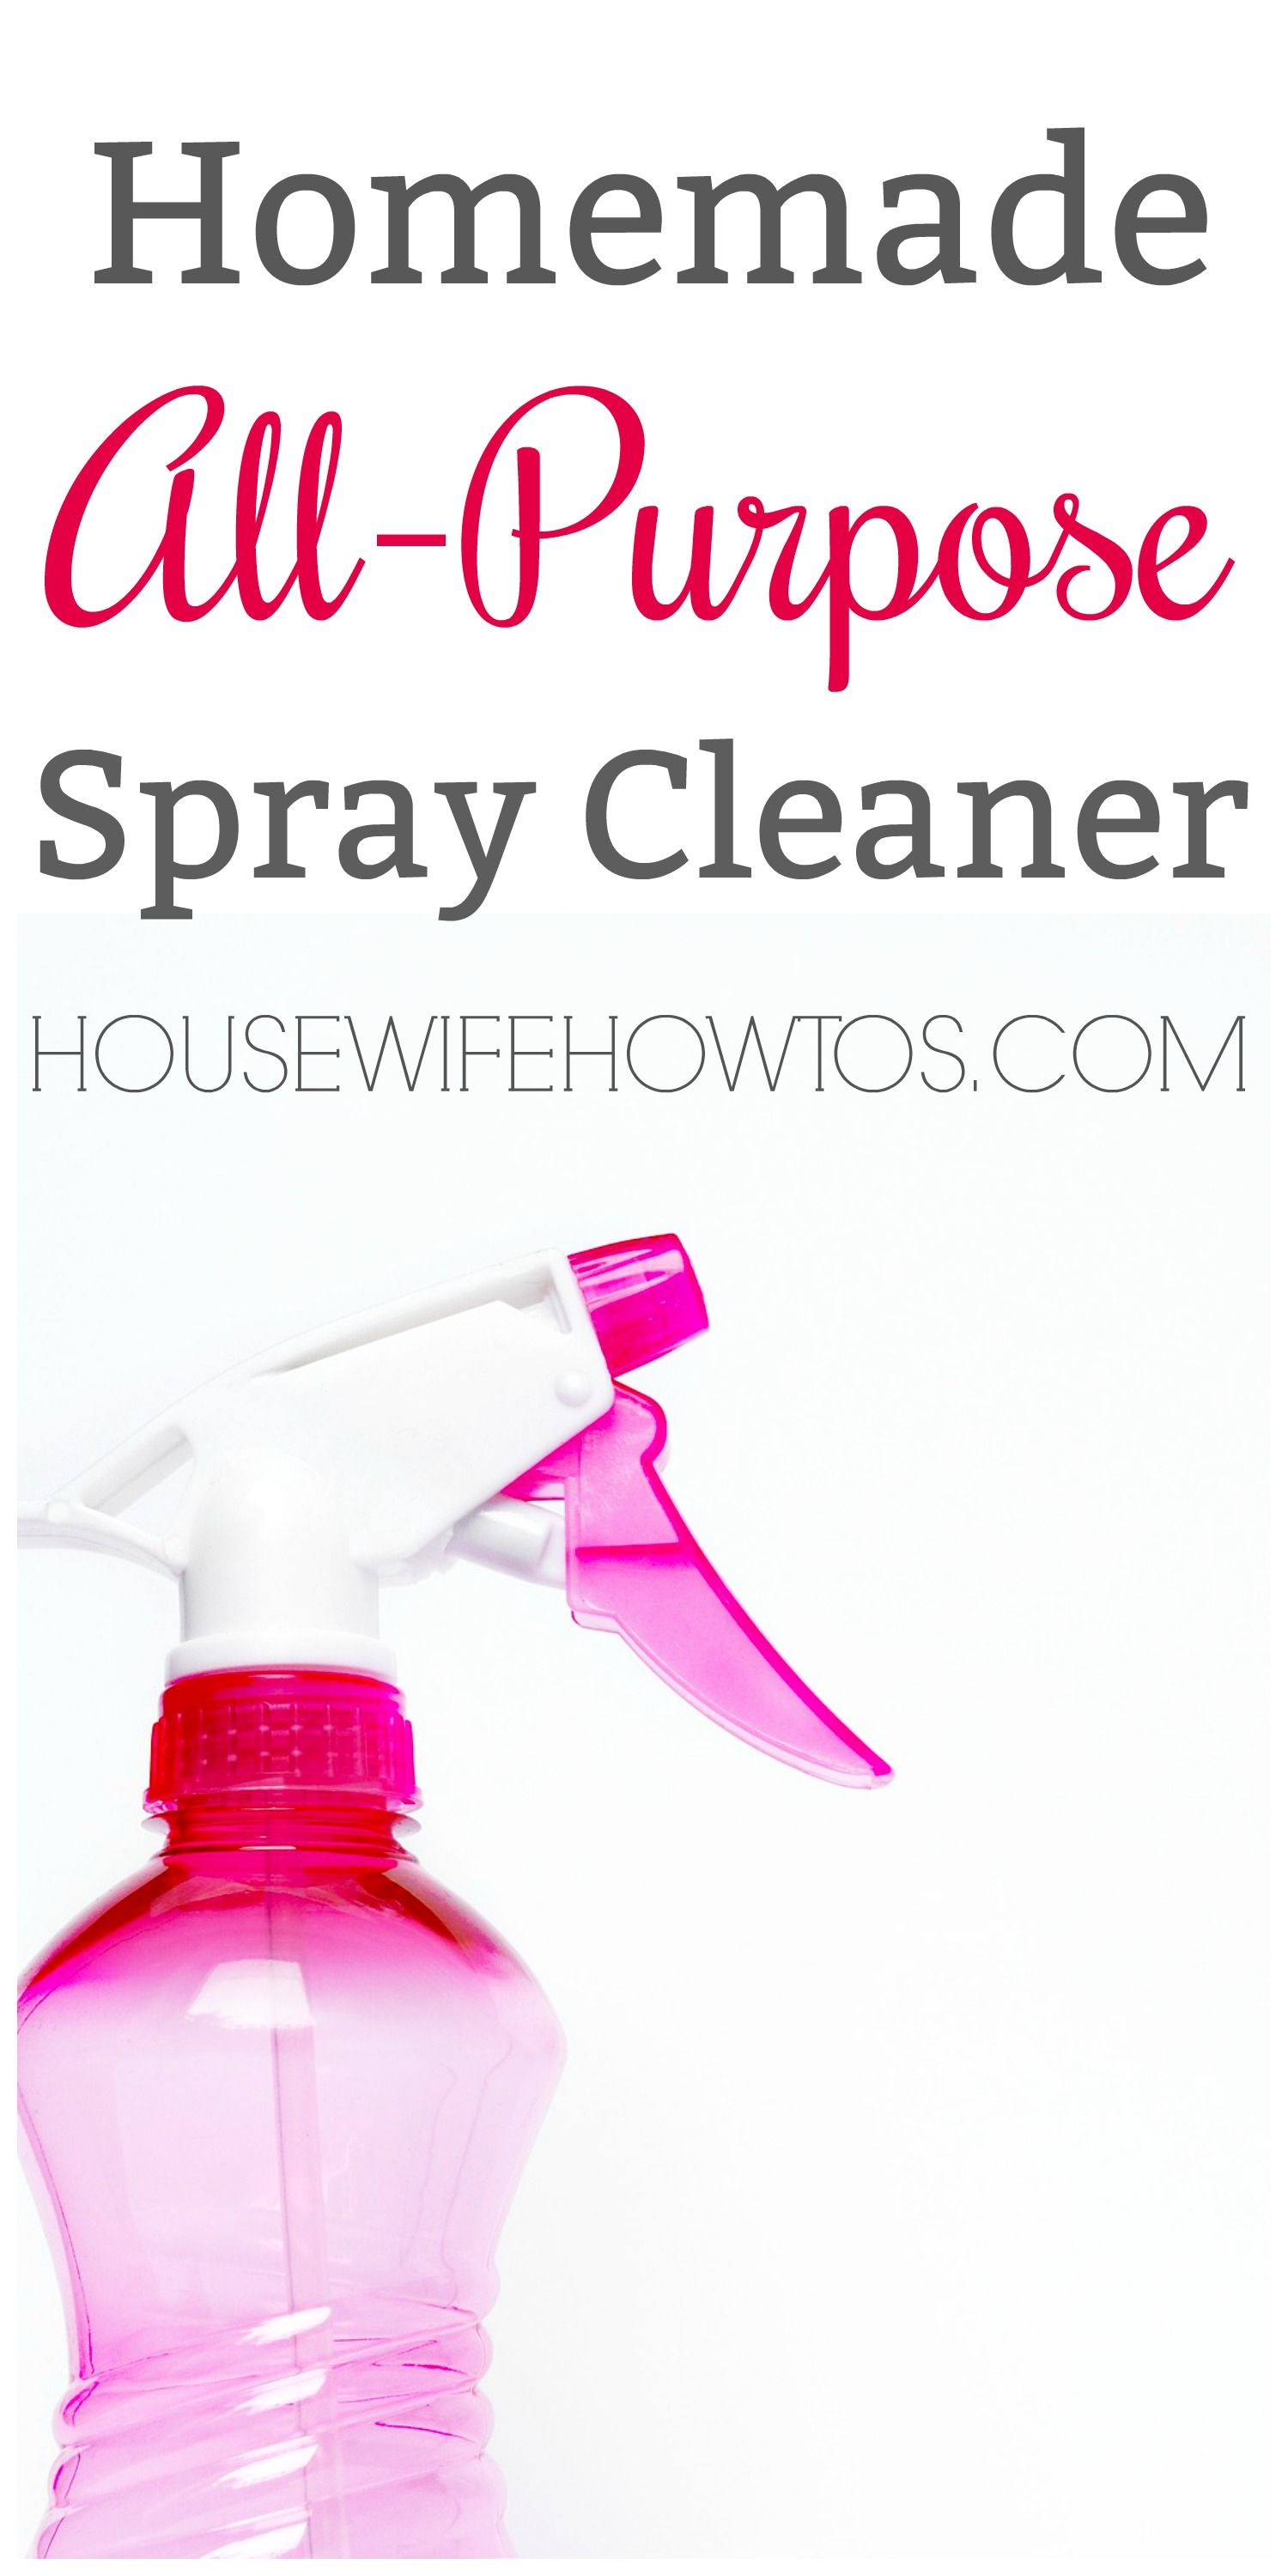 Homemade All-Purpose Spray Cleaner - Get a natural clean using ingredients from your kitchen #homemadecleaner #naturalcleaning #cleaning #cleaningmix ...